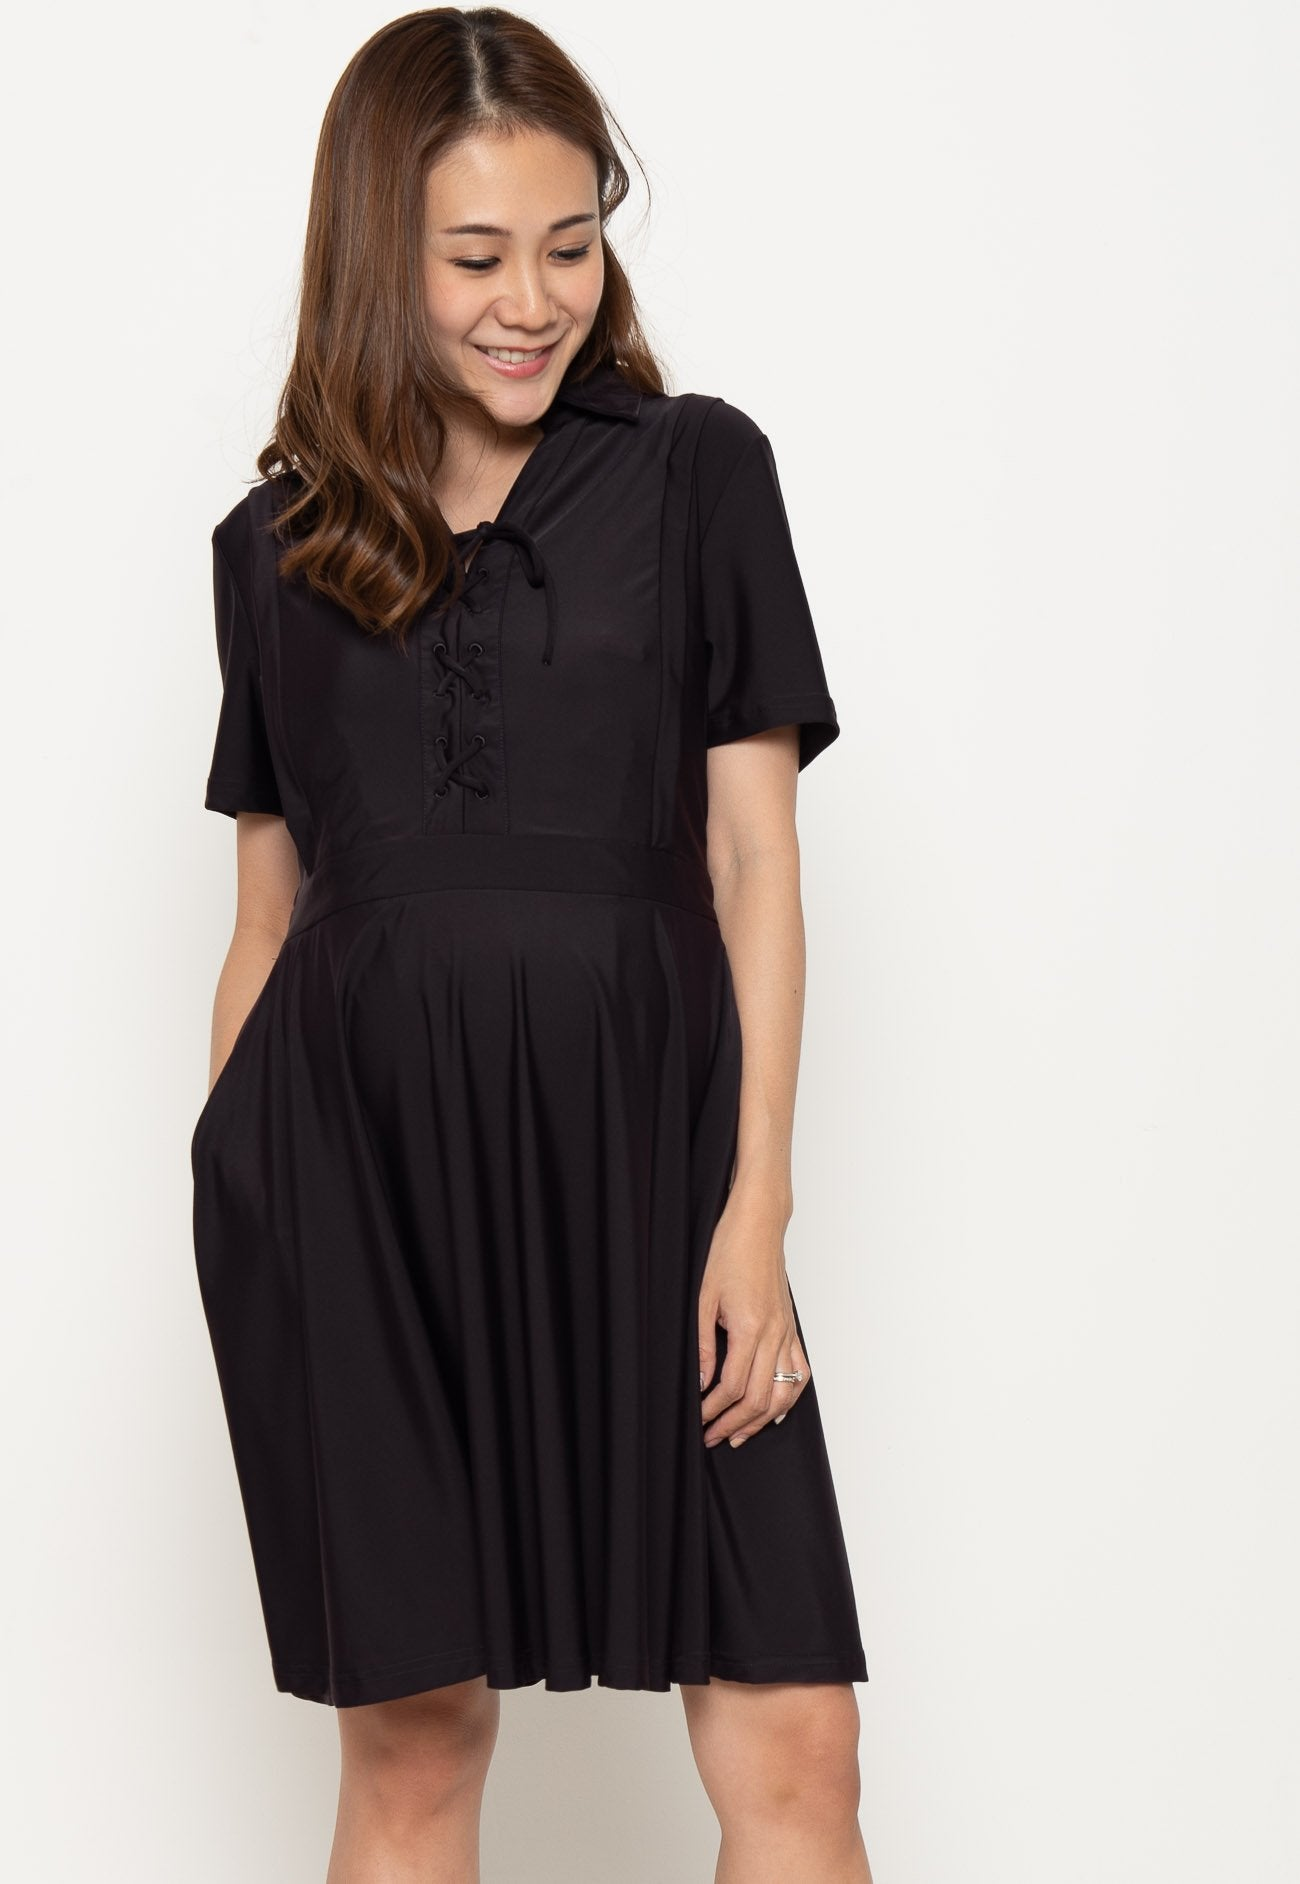 Crisscross Lace Nursing Dress in Black Burgundy  by Jump Eat Cry - Maternity and nursing wear